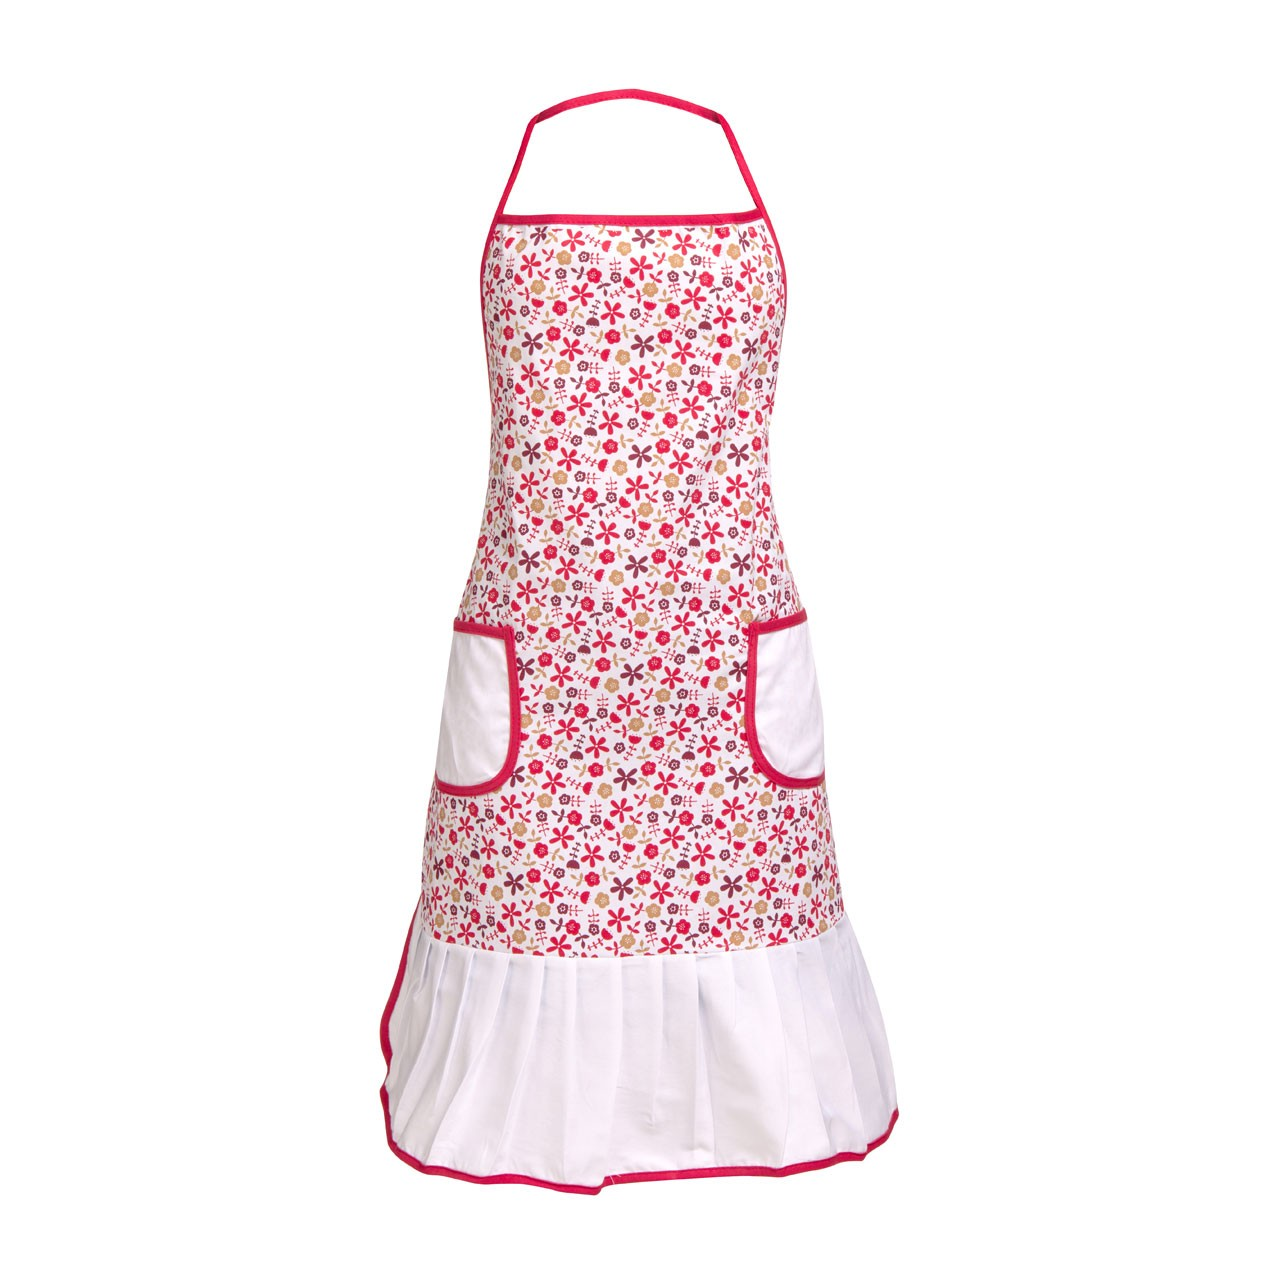 Daisy Apron - Red